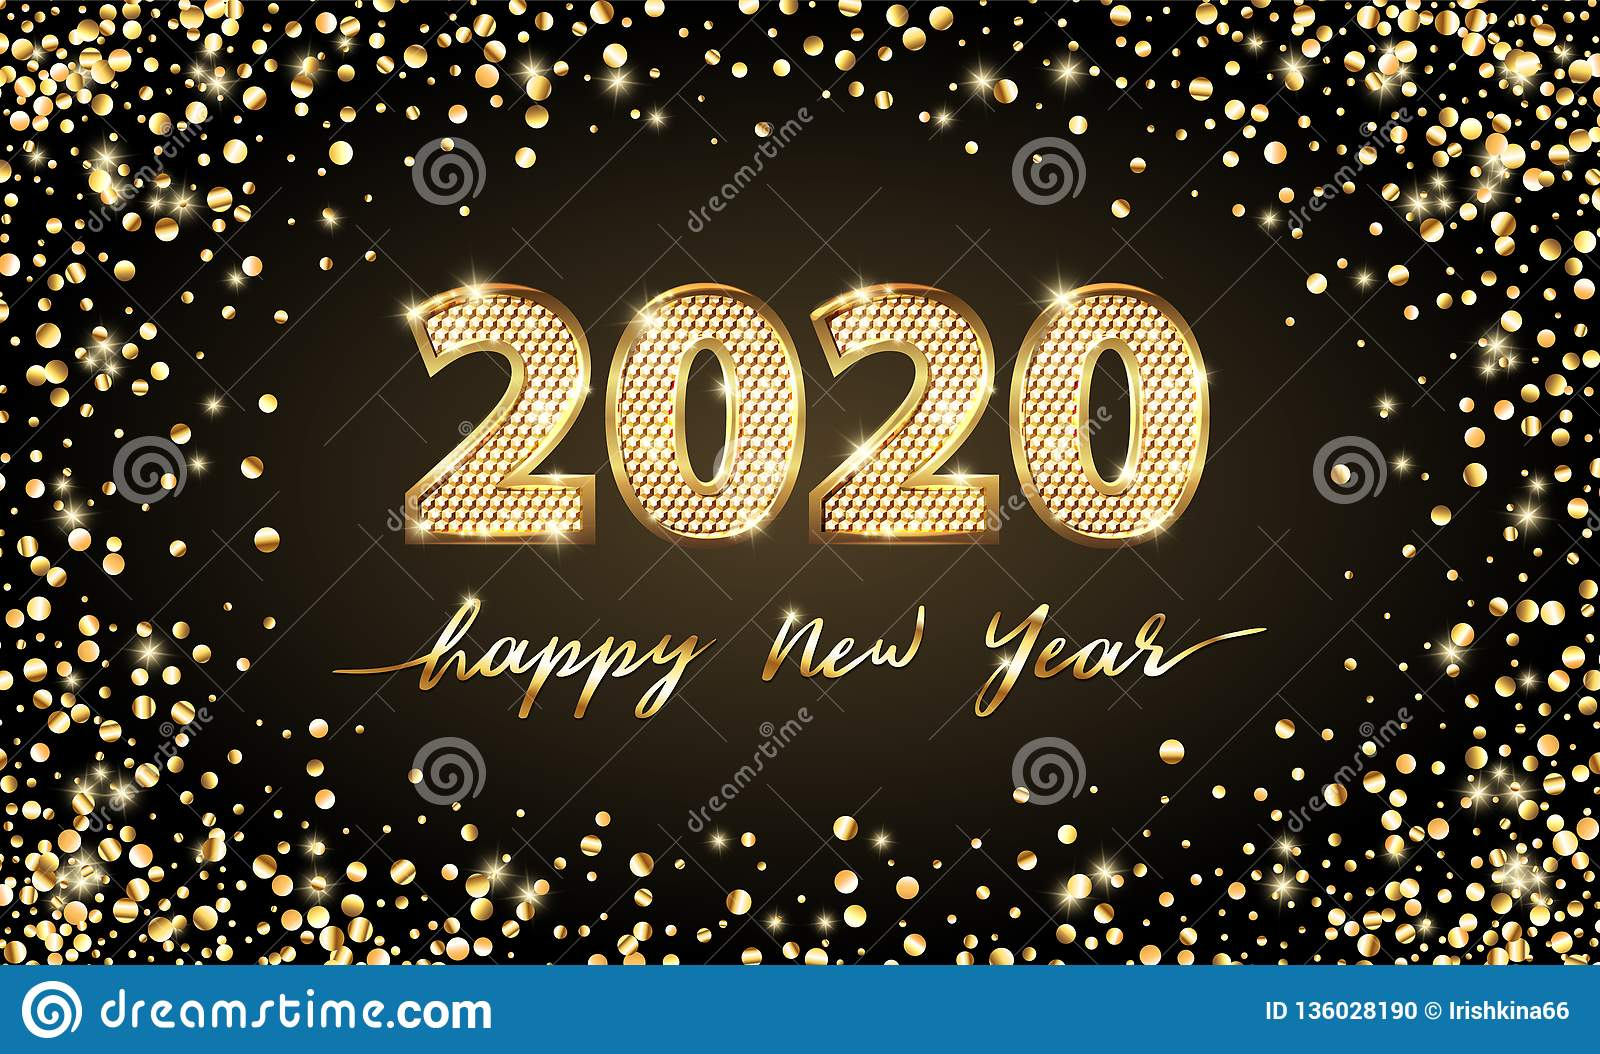 Happy New Year 2020 Glitter Golden Vector Luxury Text 2020 Happy New Year. Gold Festive